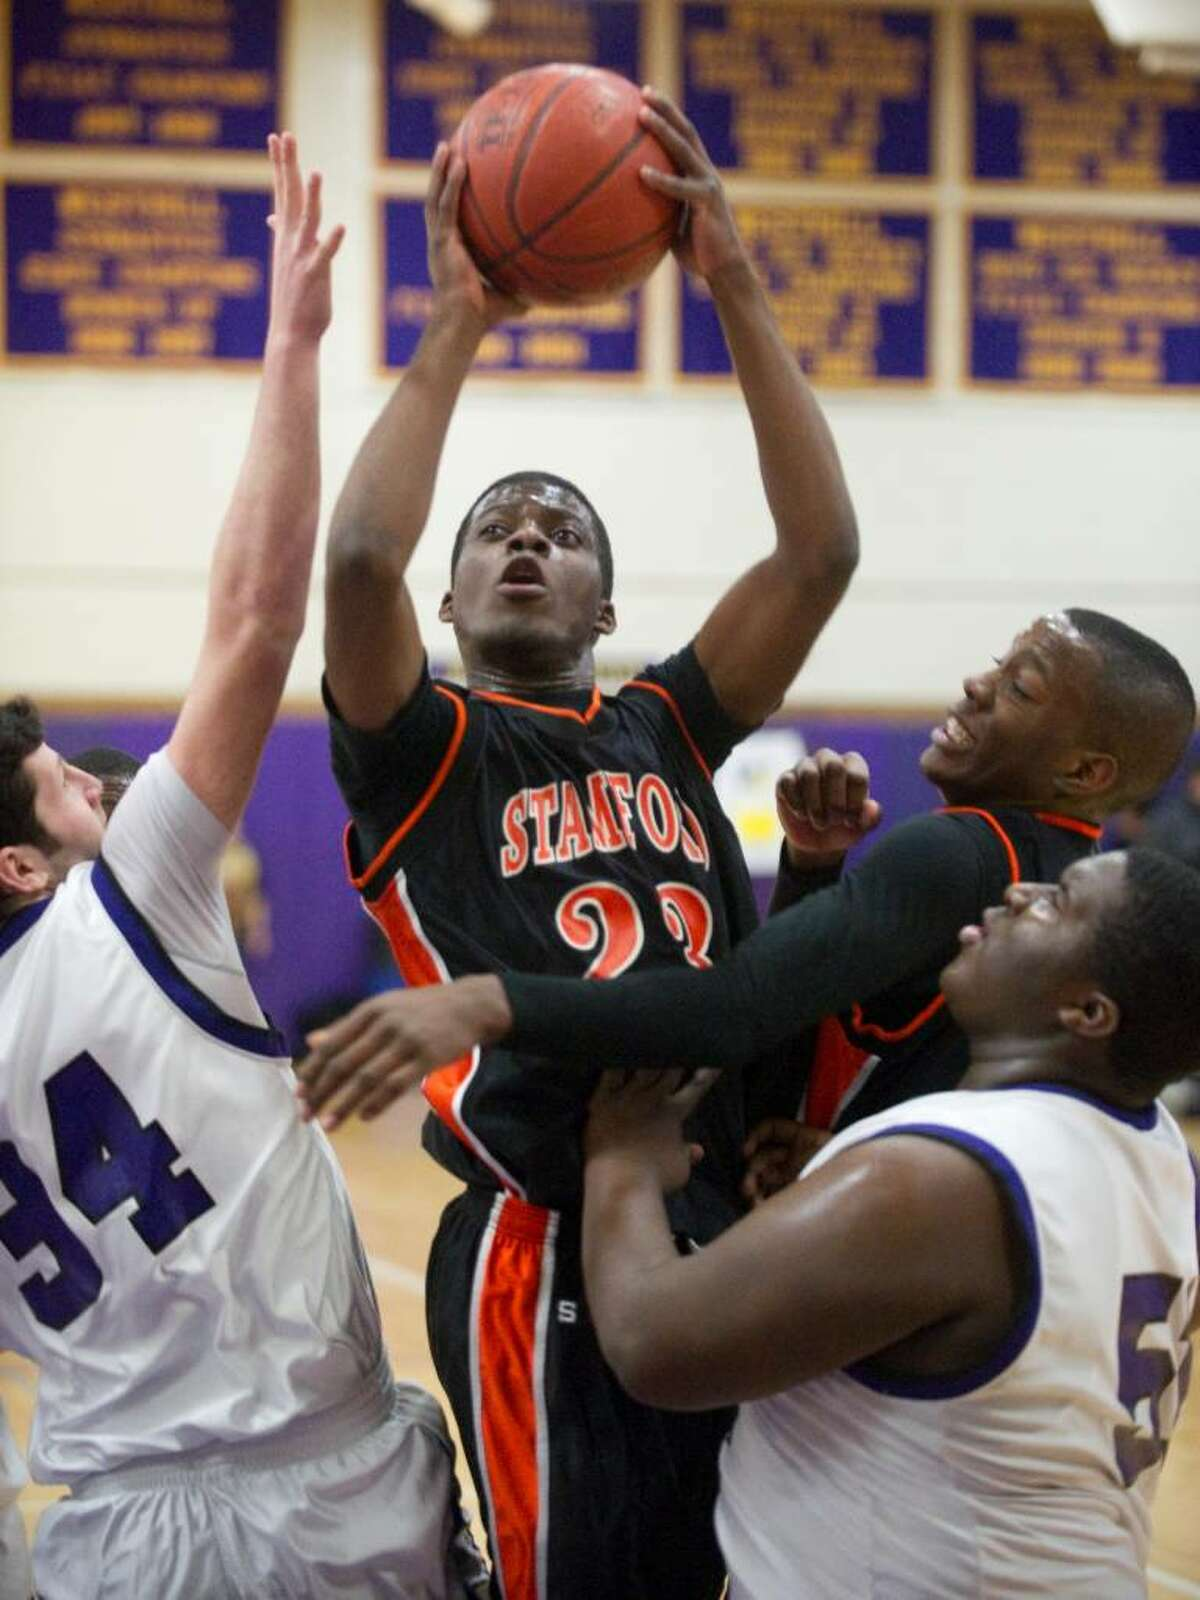 Stamford's Jethro Anilus shoots during an FCIAC boys basketball game at Westhill High School in Stamford, Conn. on Monday, Feb. 15, 2010. Stamford High School defeated Westhill High School 45-43.